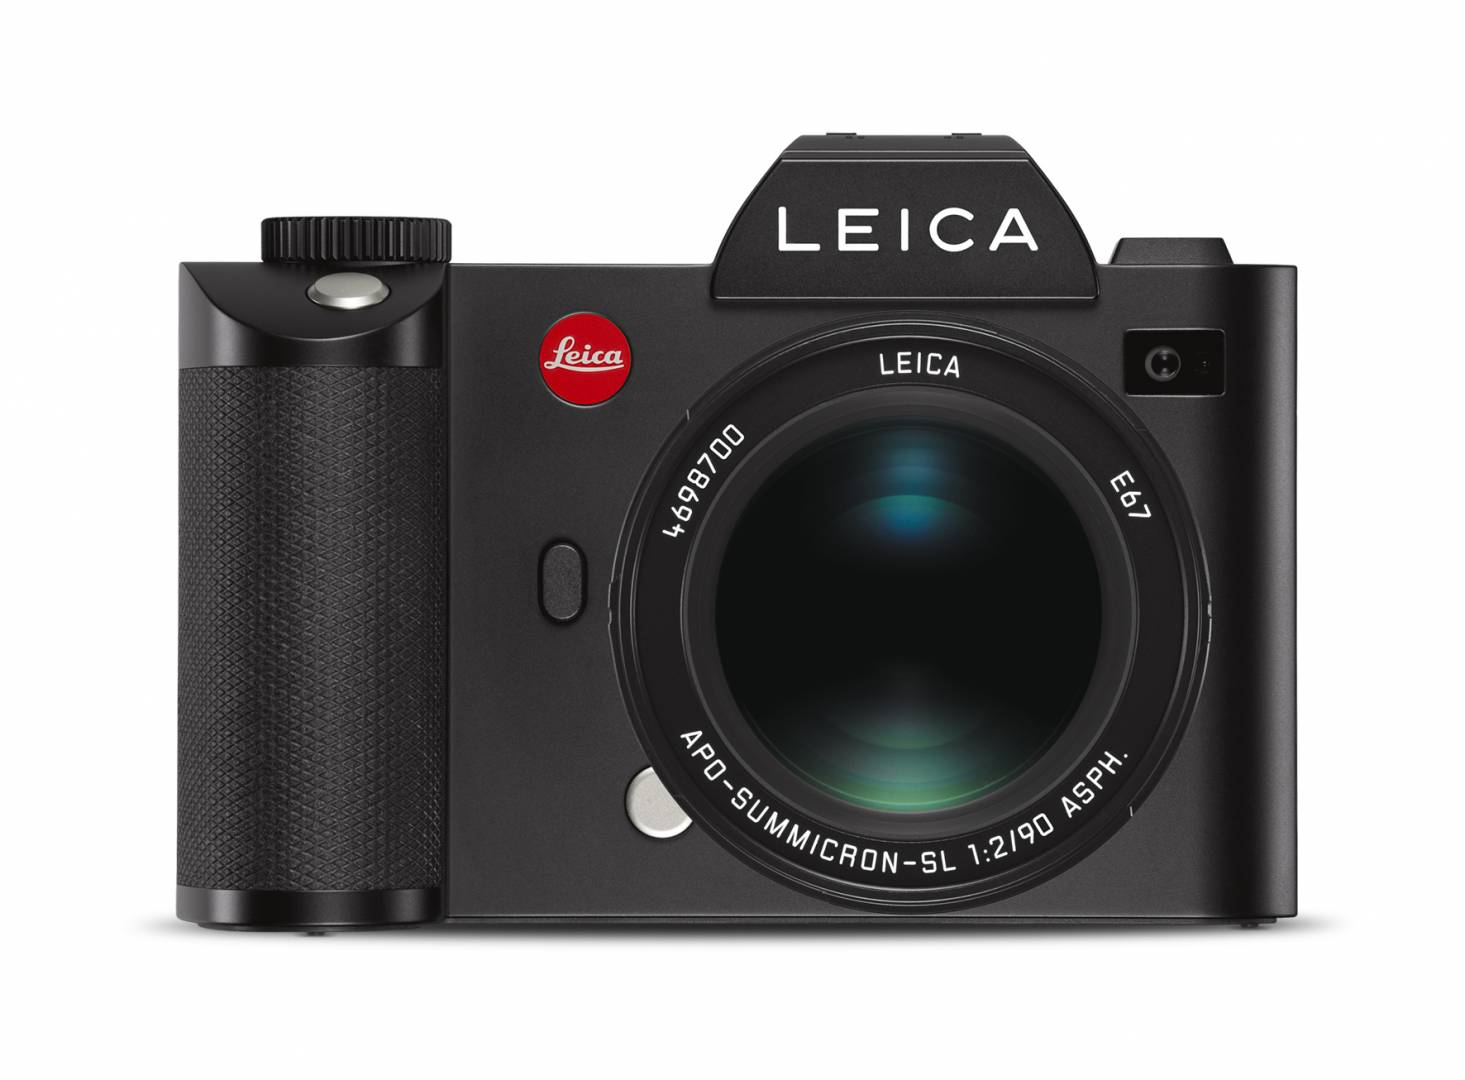 The SL 601 also receives an L-Mount lens compatibility upgrade as well as some of the video features seen on the SL2 (Image Leica Camera AG)